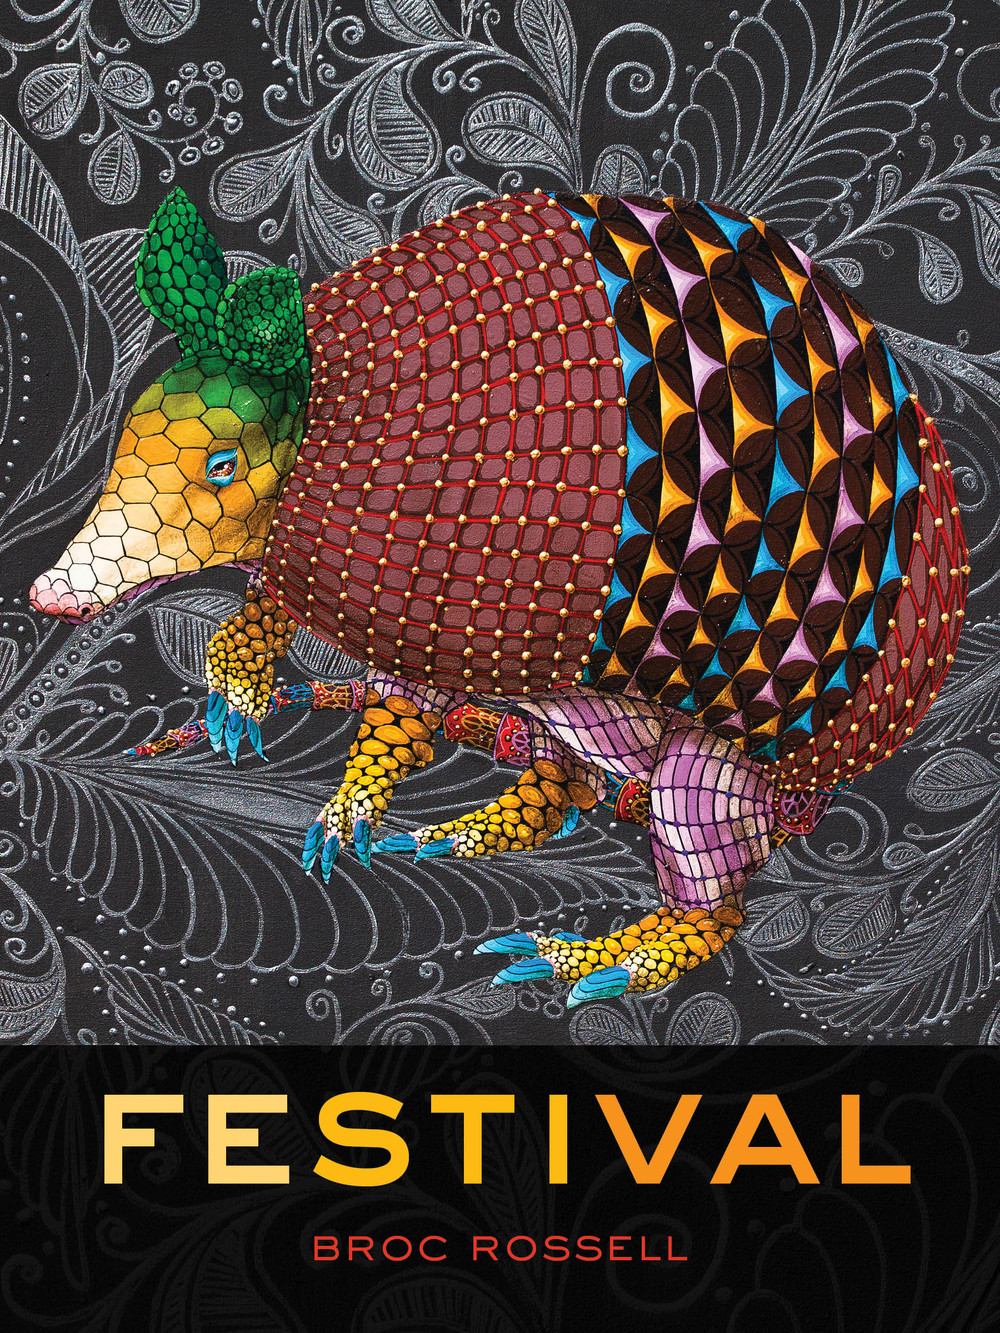 Festival By Broc Rossell Editor's Choice for the 2014 First Book Competition